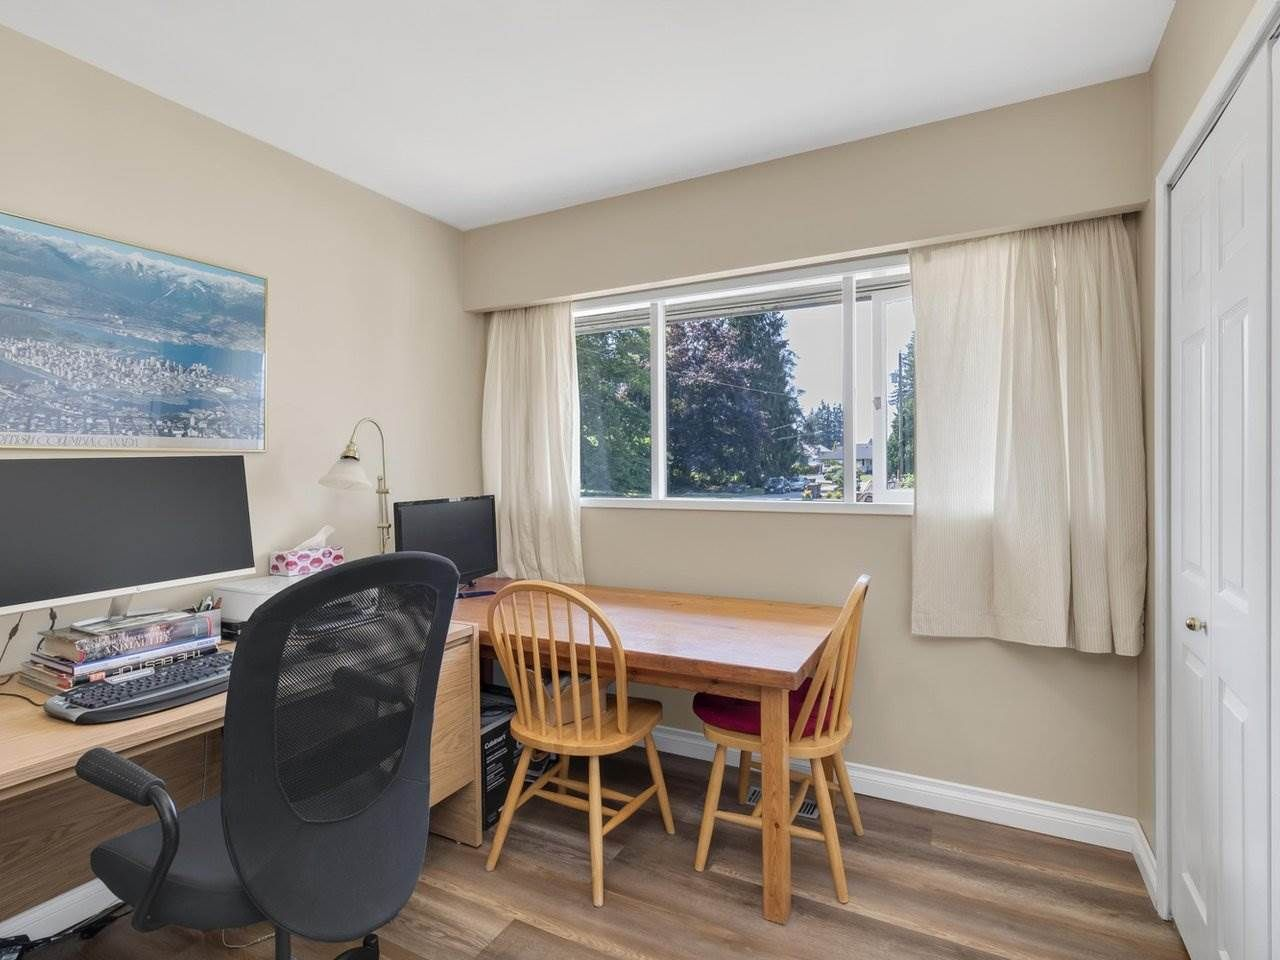 Photo 18: Photos: 943 GATENSBURY Street in Coquitlam: Harbour Chines House for sale : MLS®# R2499202